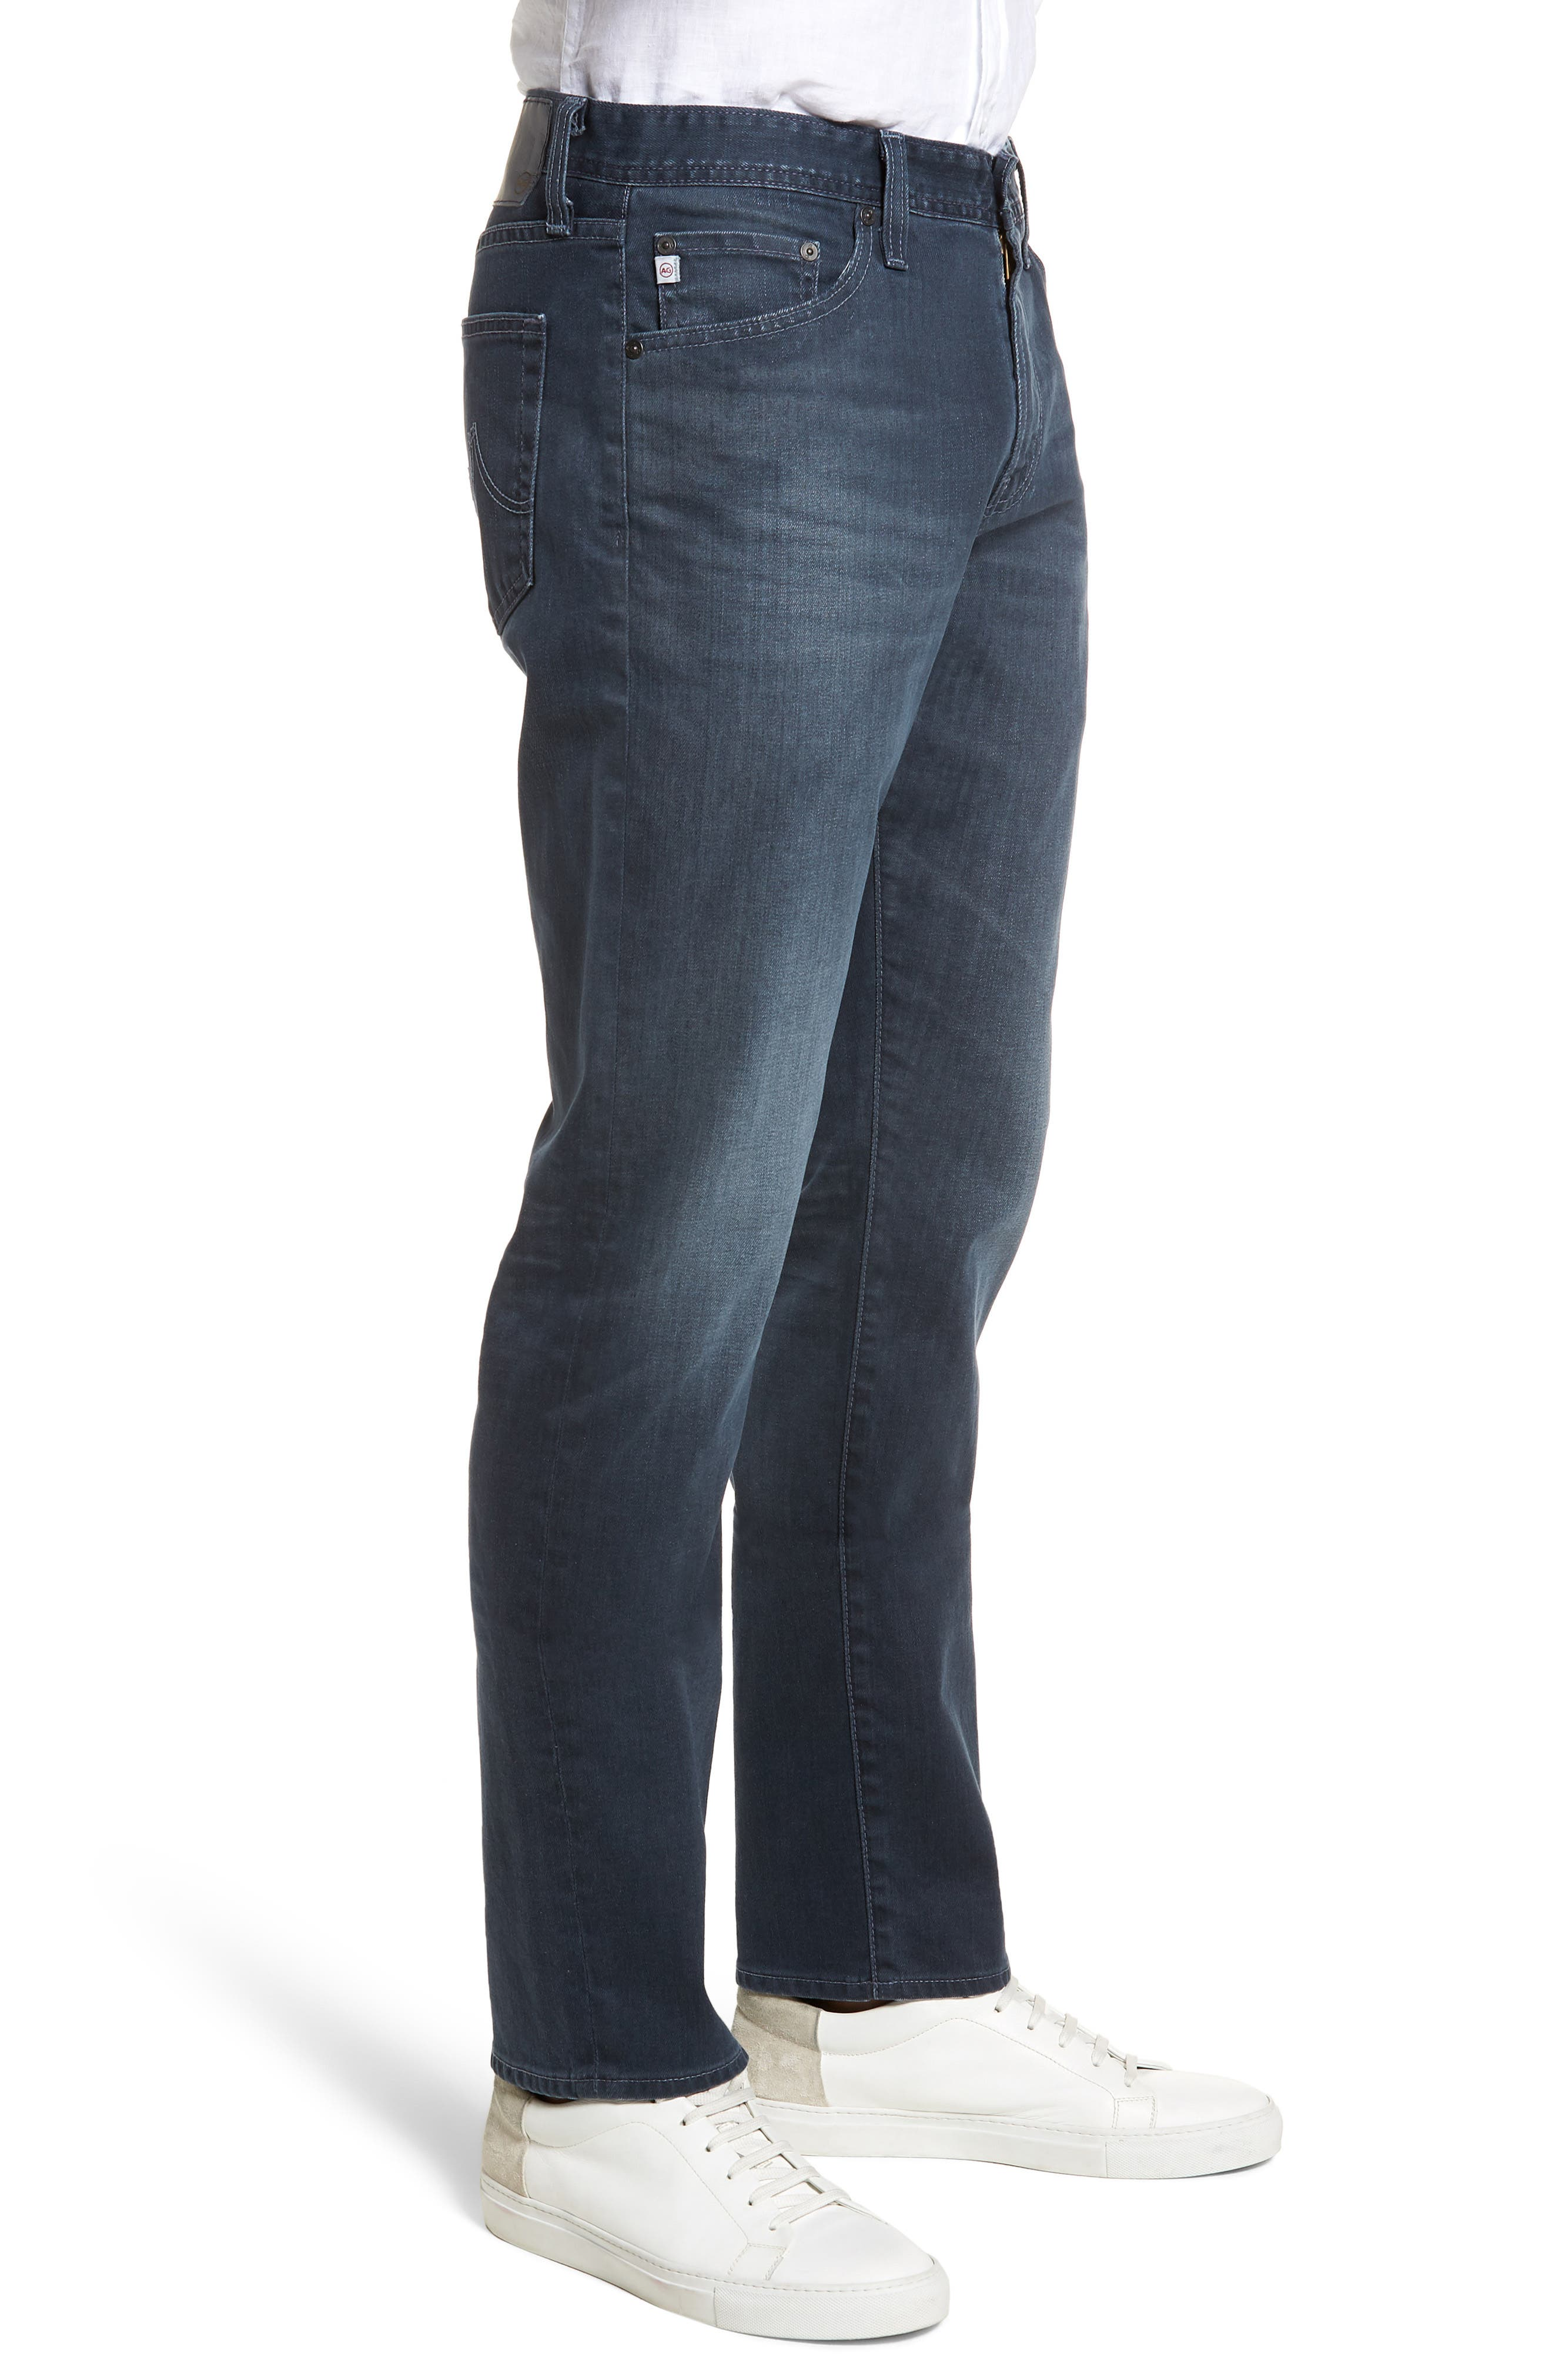 Everett Slim Straight Leg Jeans,                             Alternate thumbnail 3, color,                             9 YEARS TIDEPOOL